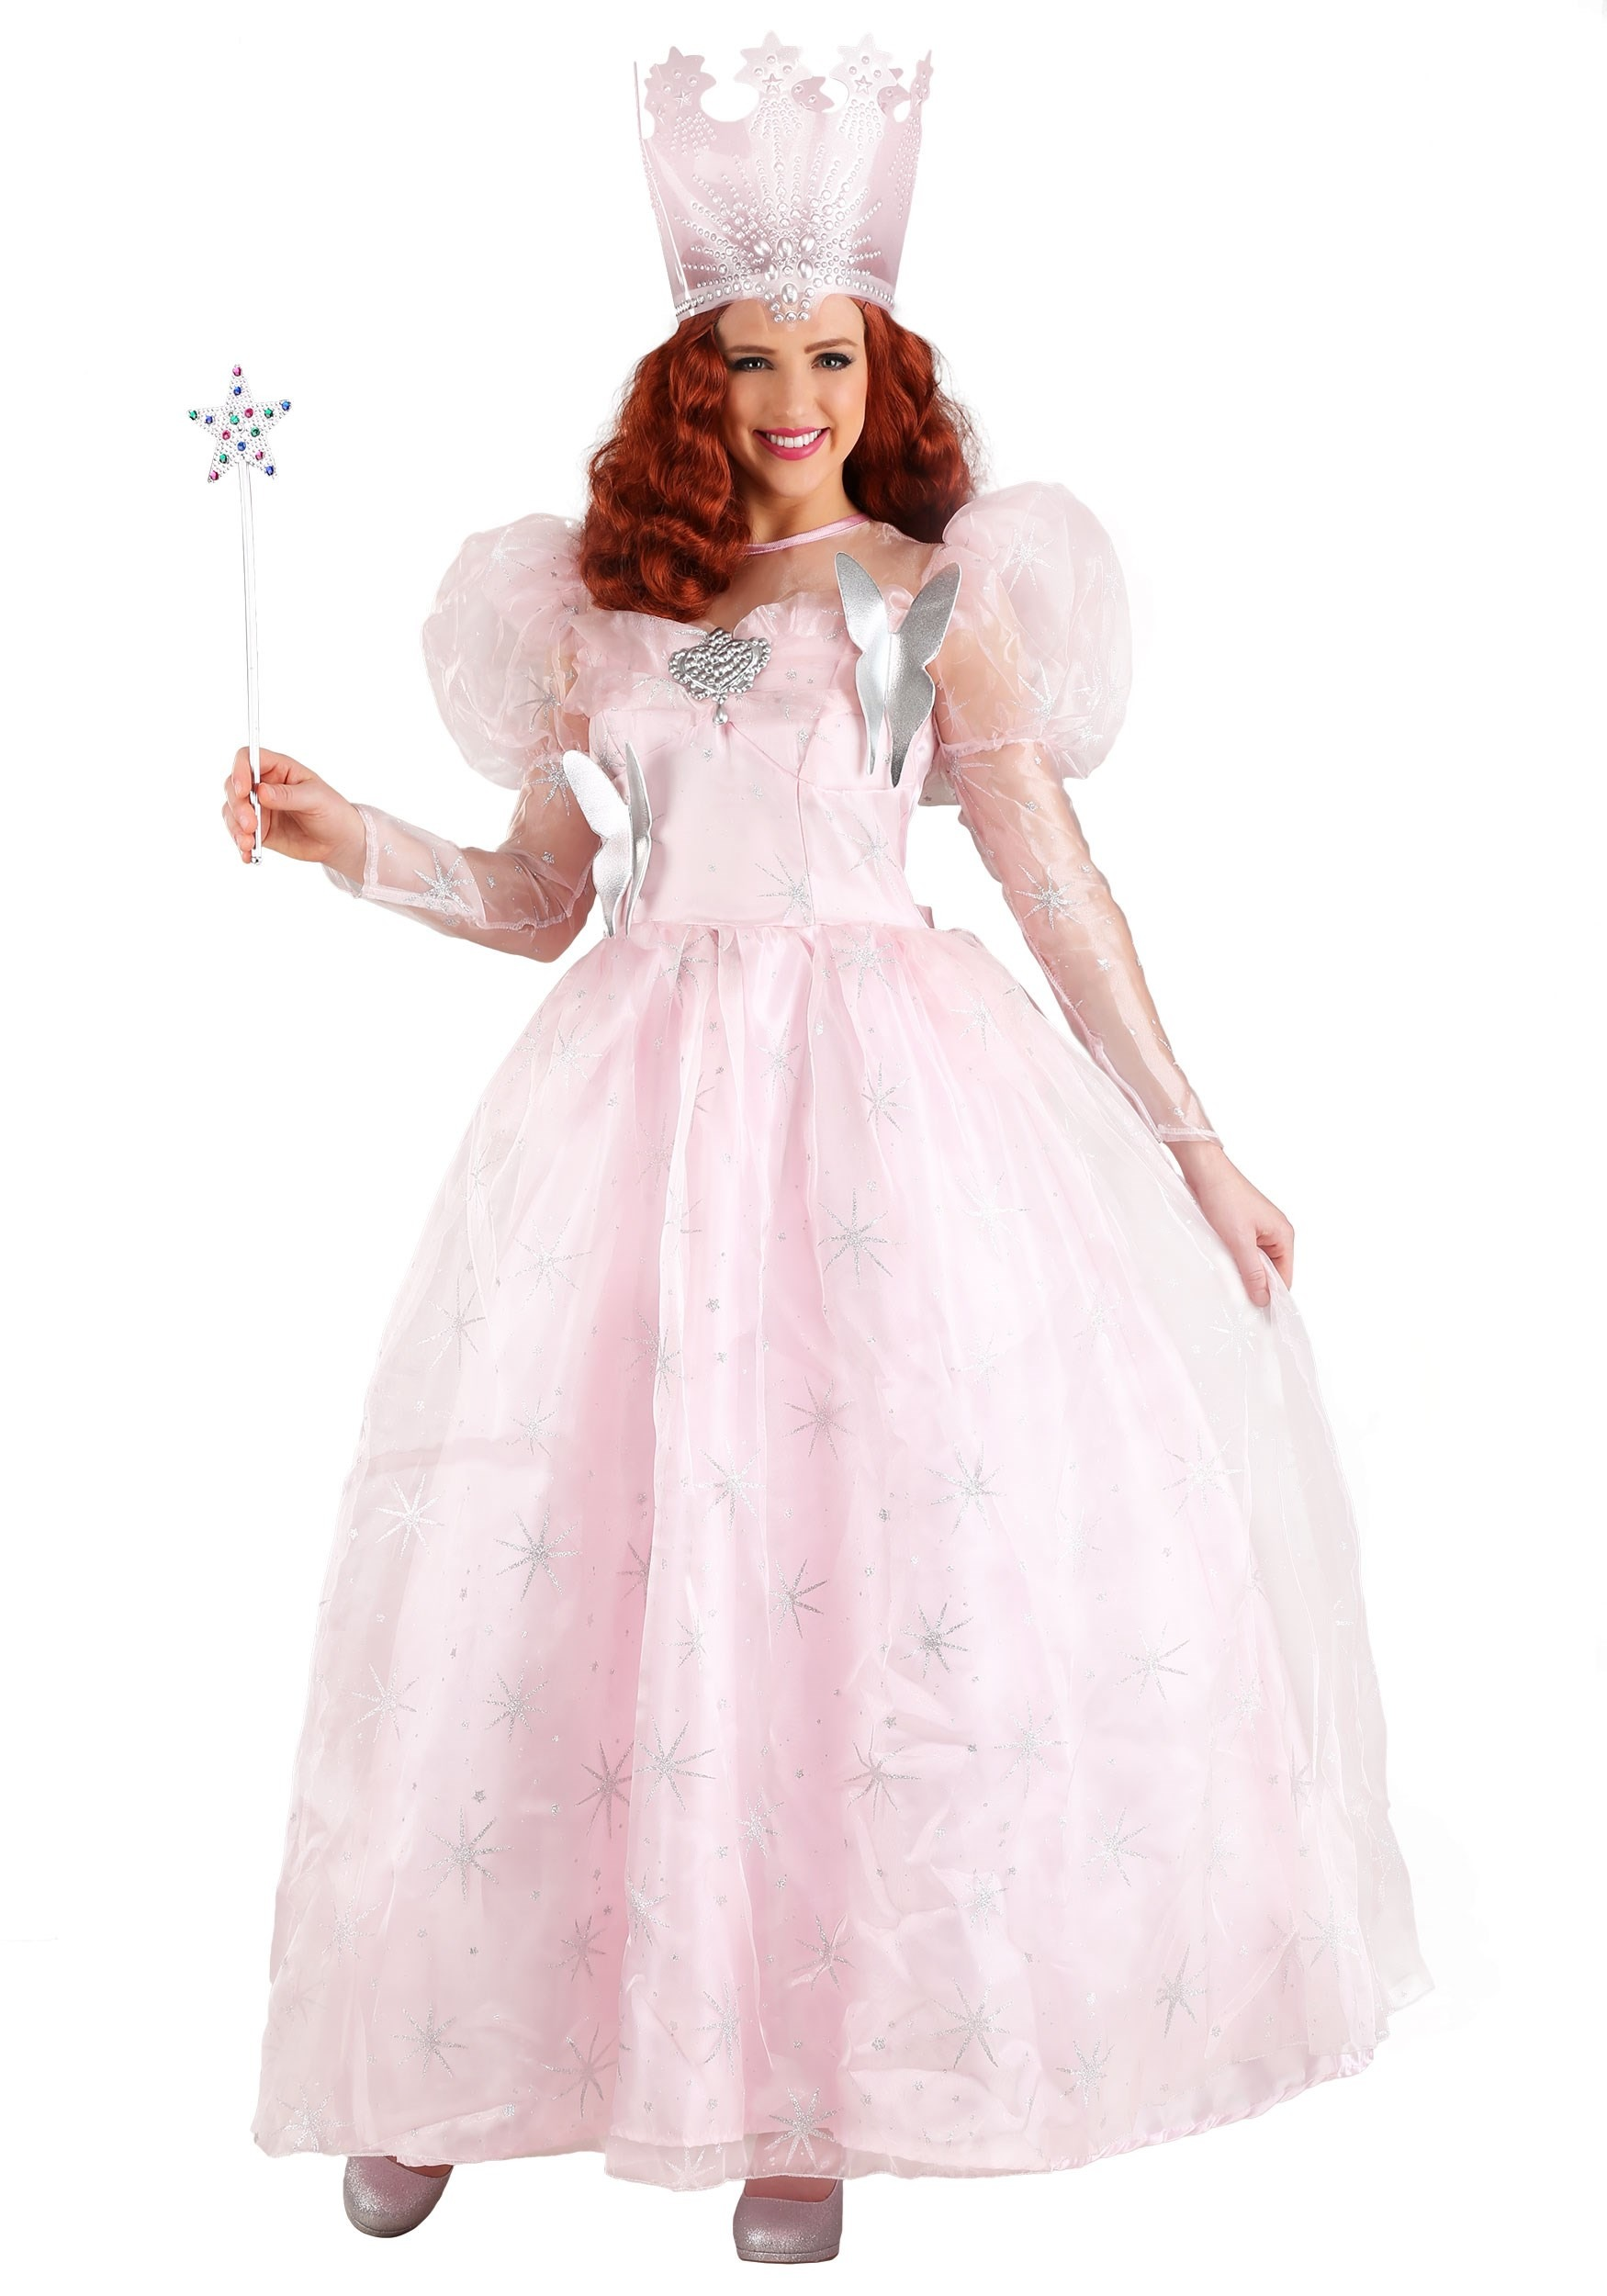 Christmas gown ideas 70s halloween - Plus Size Deluxe Gilnda The Good Witch Costume